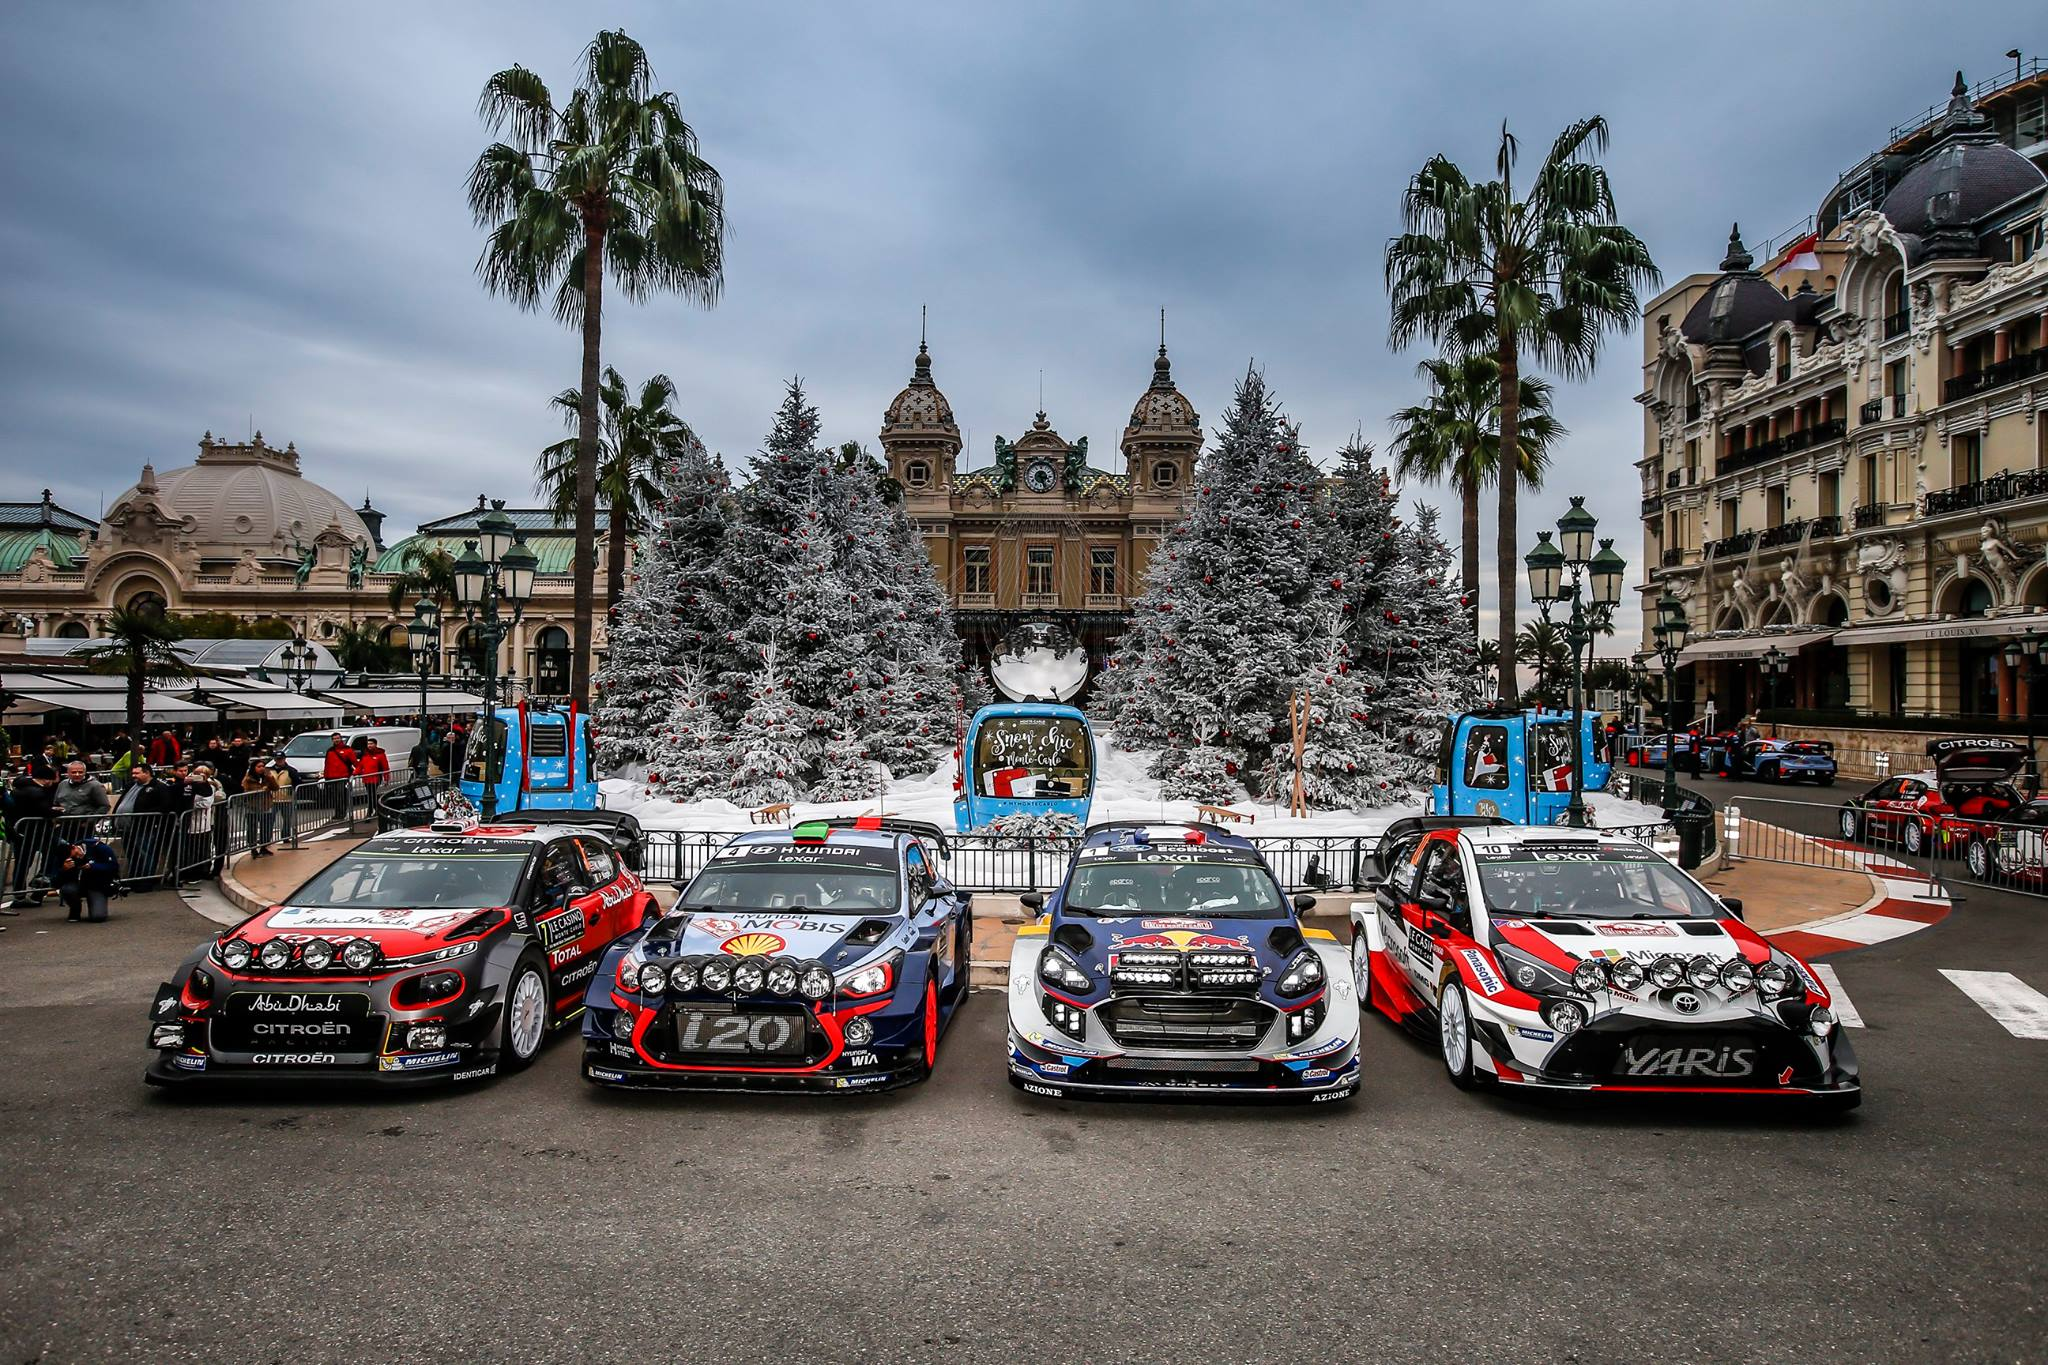 wrc ogier takes rallye monte carlo lead after neuville 39 s misfortune gtspirit. Black Bedroom Furniture Sets. Home Design Ideas